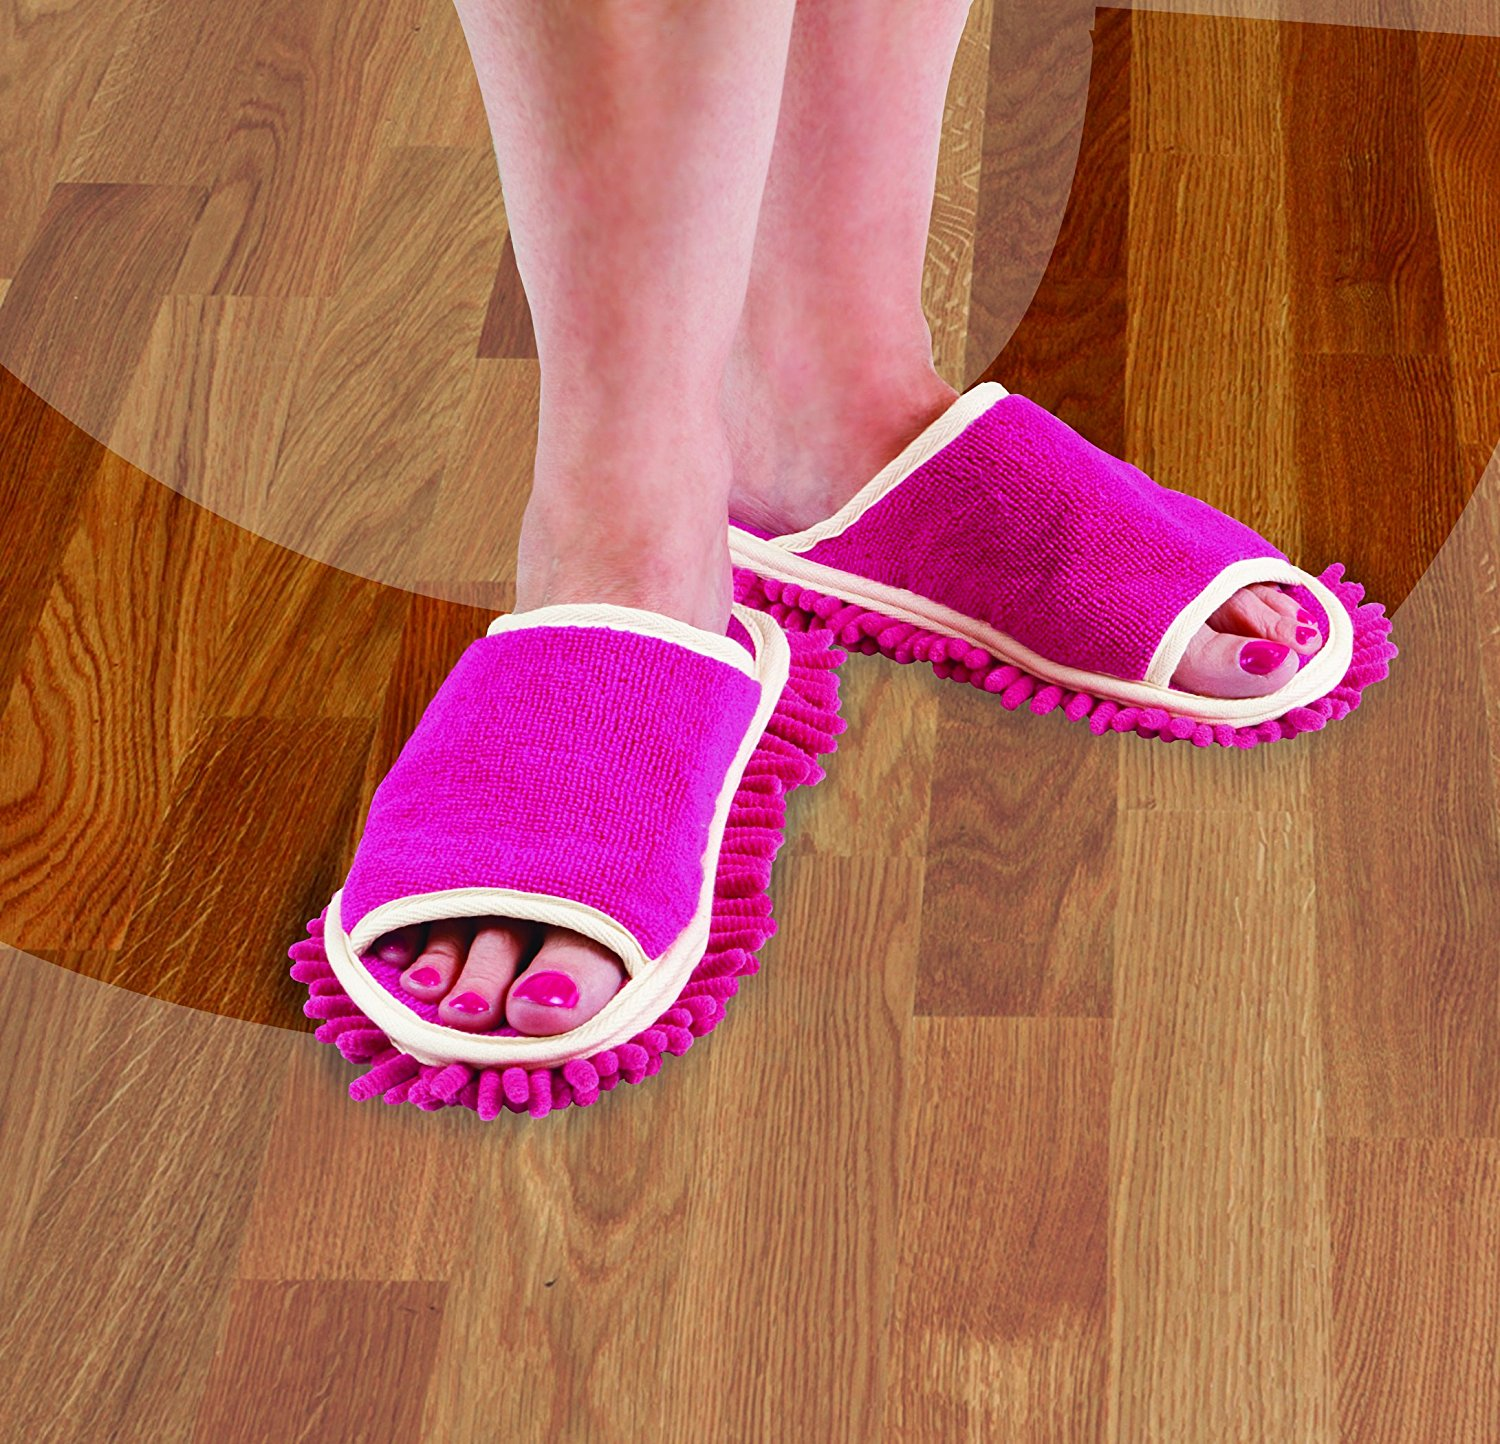 HOUSE CLEANING SLIPPERS - Didn't Know I